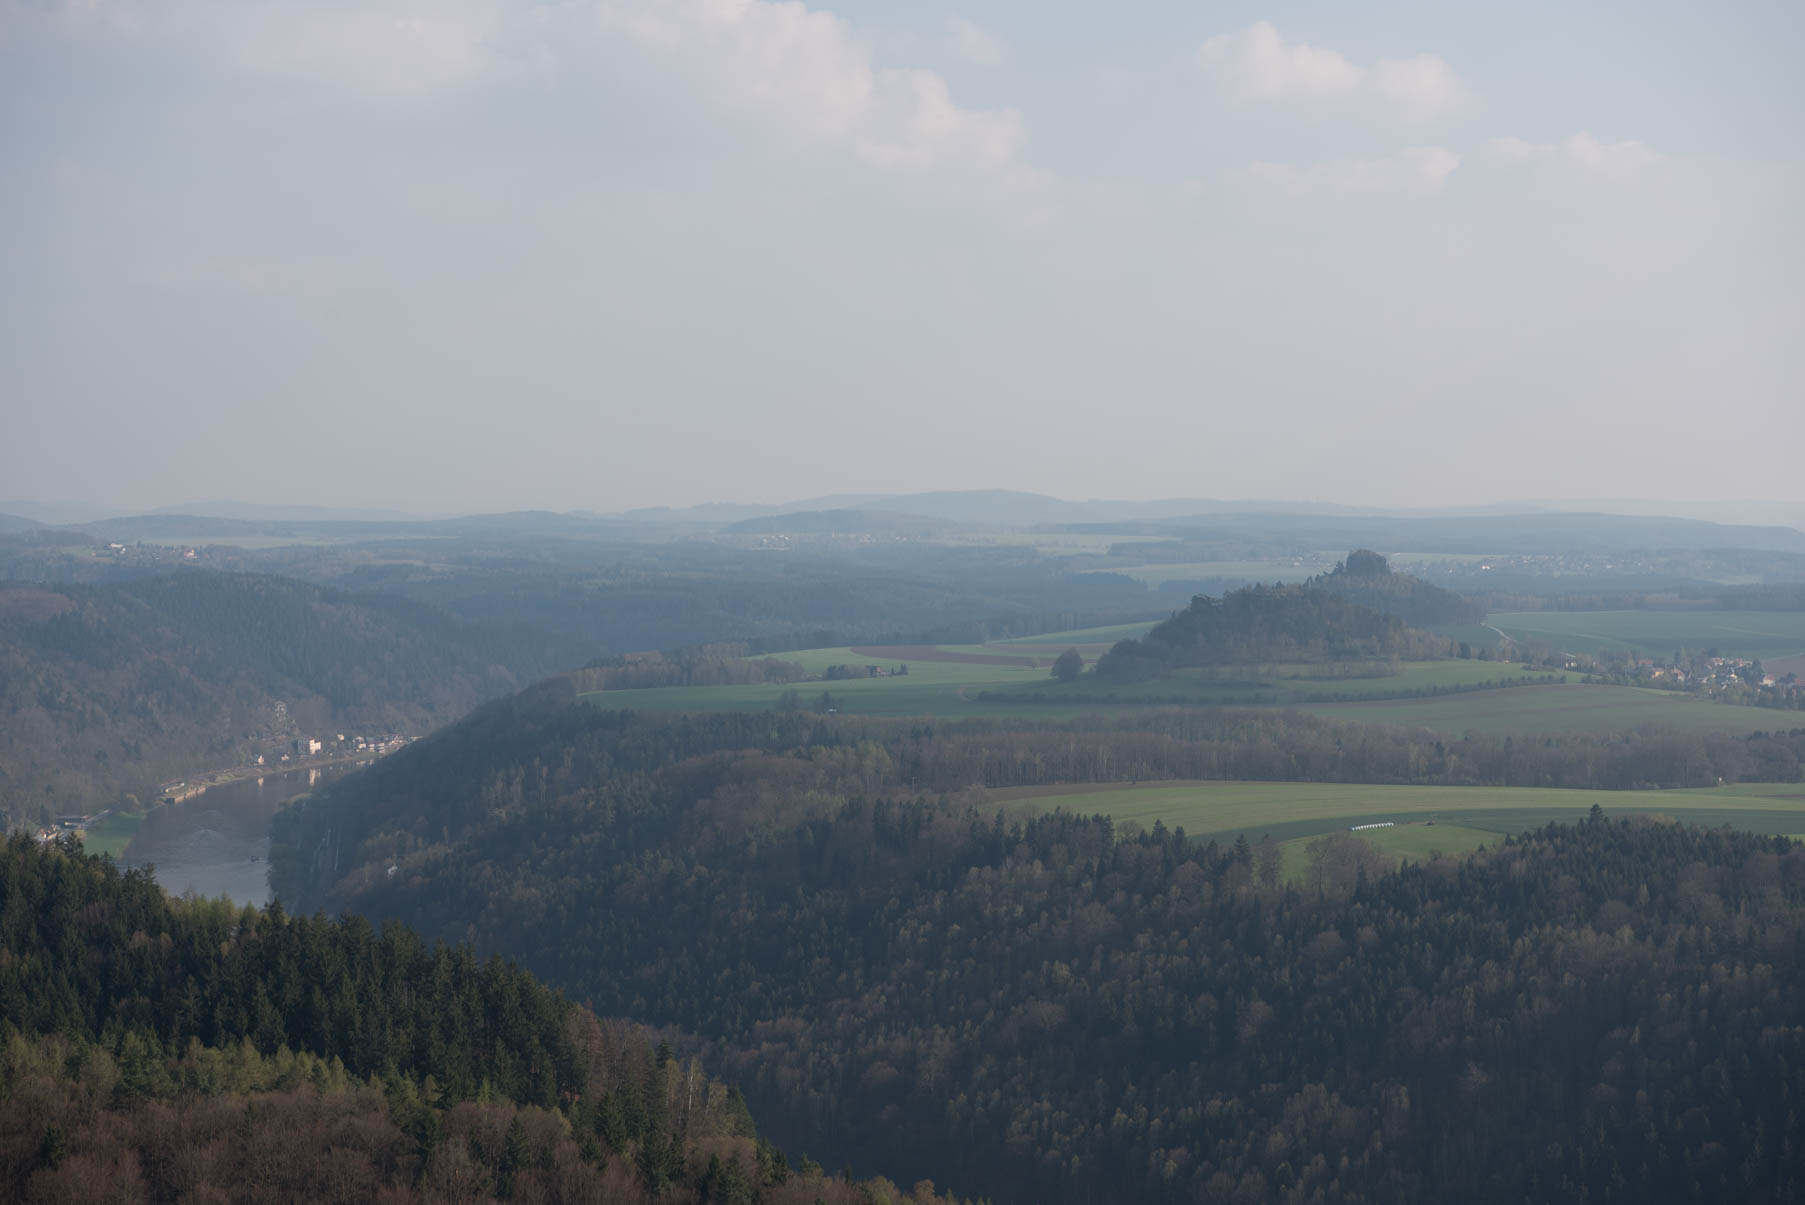 Saxon Switzerland - at 70 mm f/8, 1/160, ISO 50 RAW